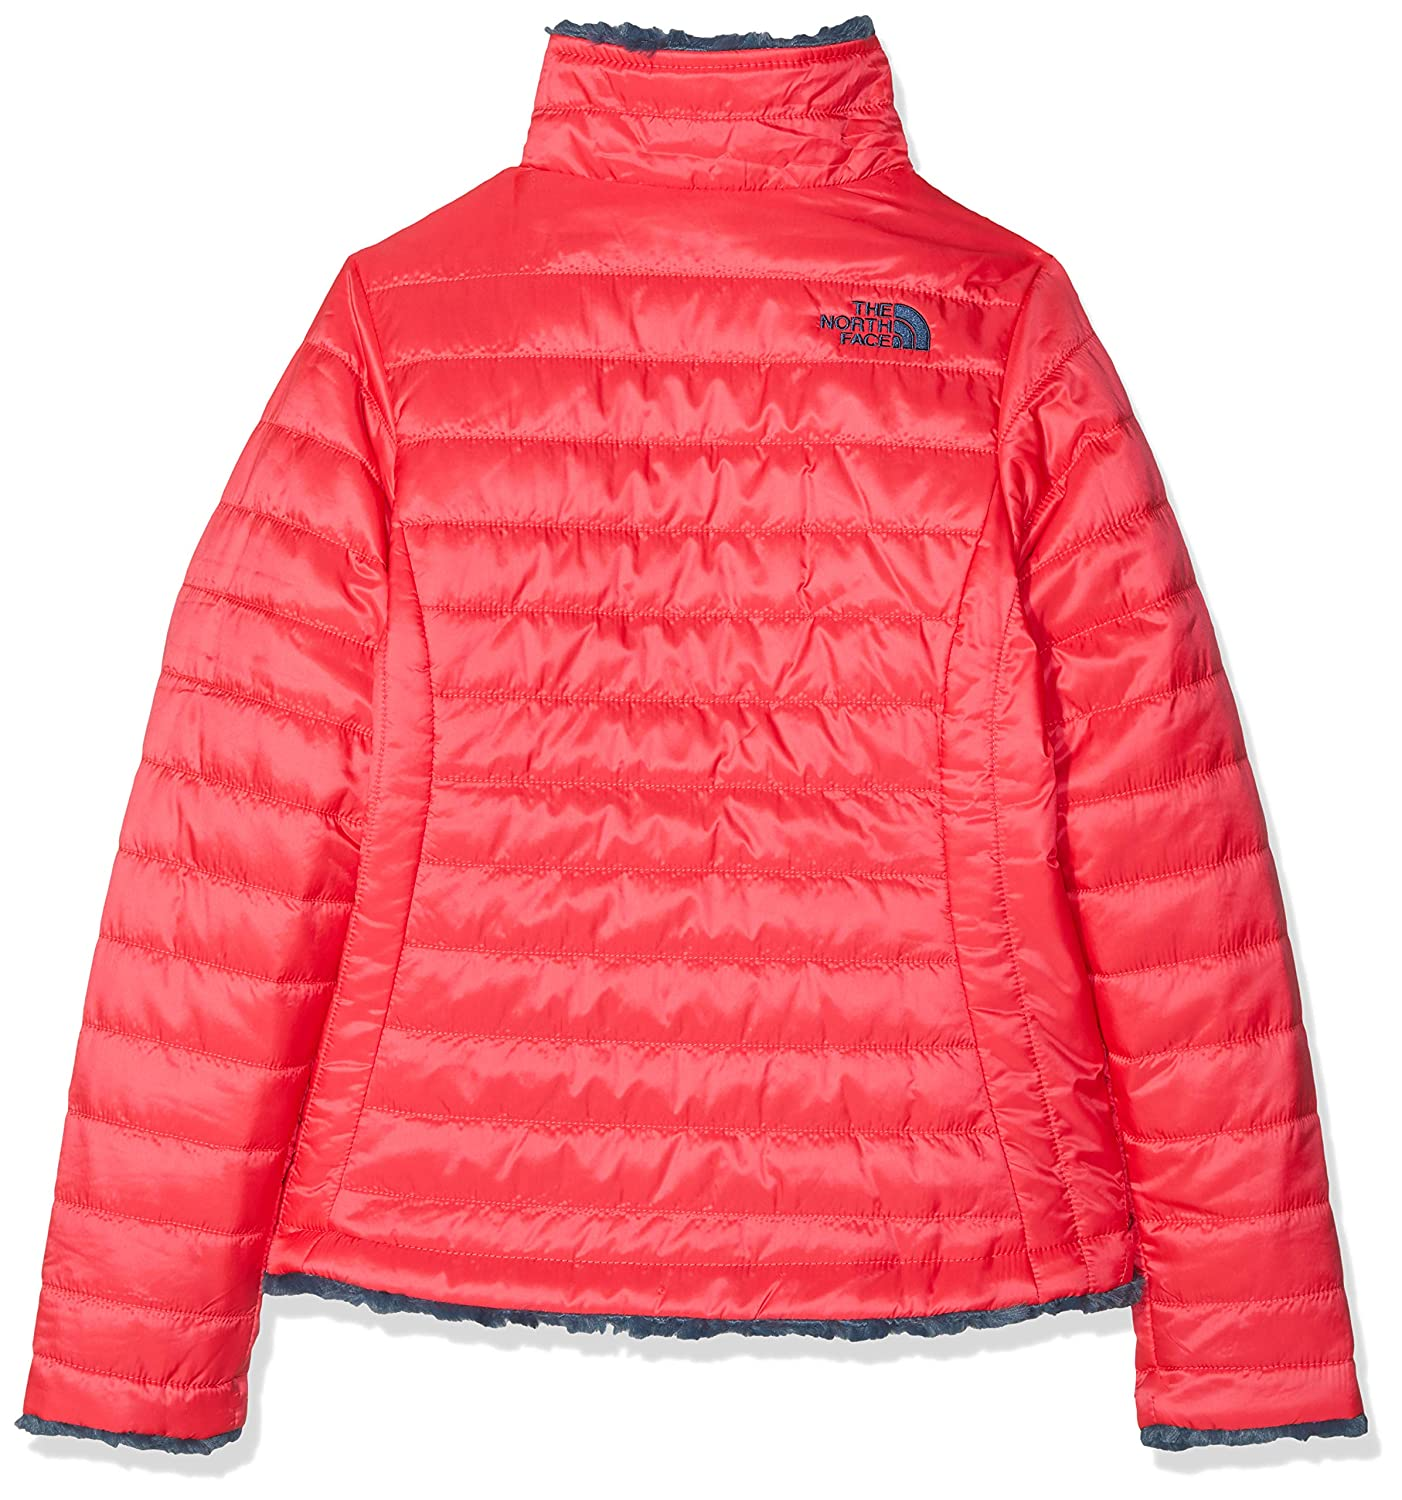 545b0203b79a Amazon.com  The North Face Girl s Reversible Mossbud Swirl Jacket ...